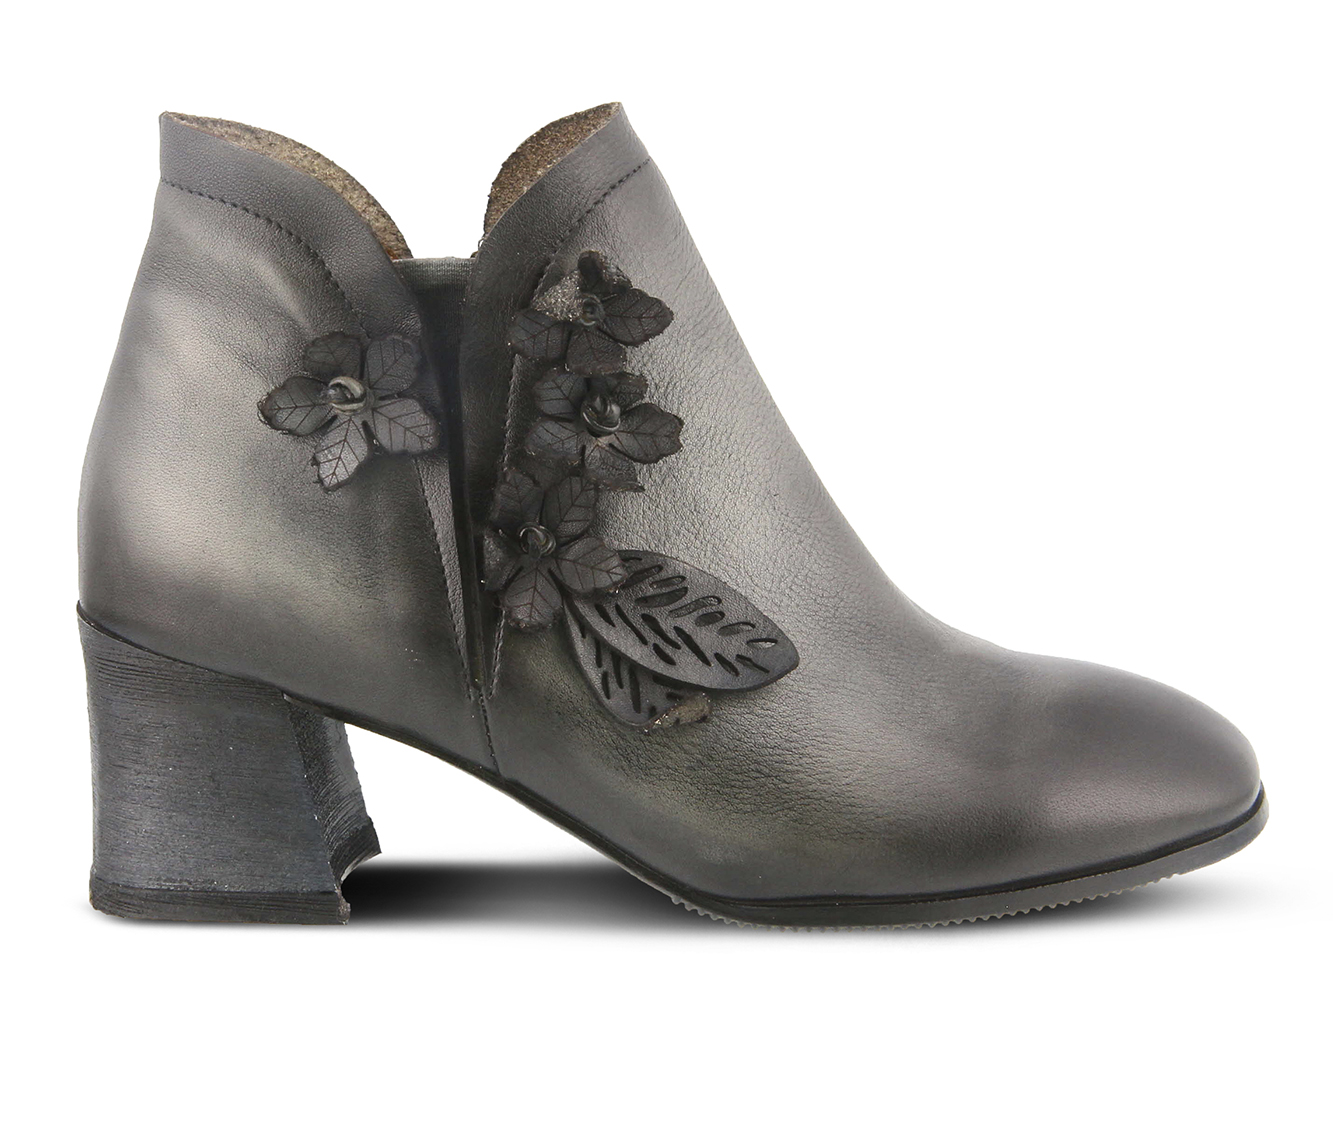 L'Artiste Loralie Women's Boots (Gray Leather)